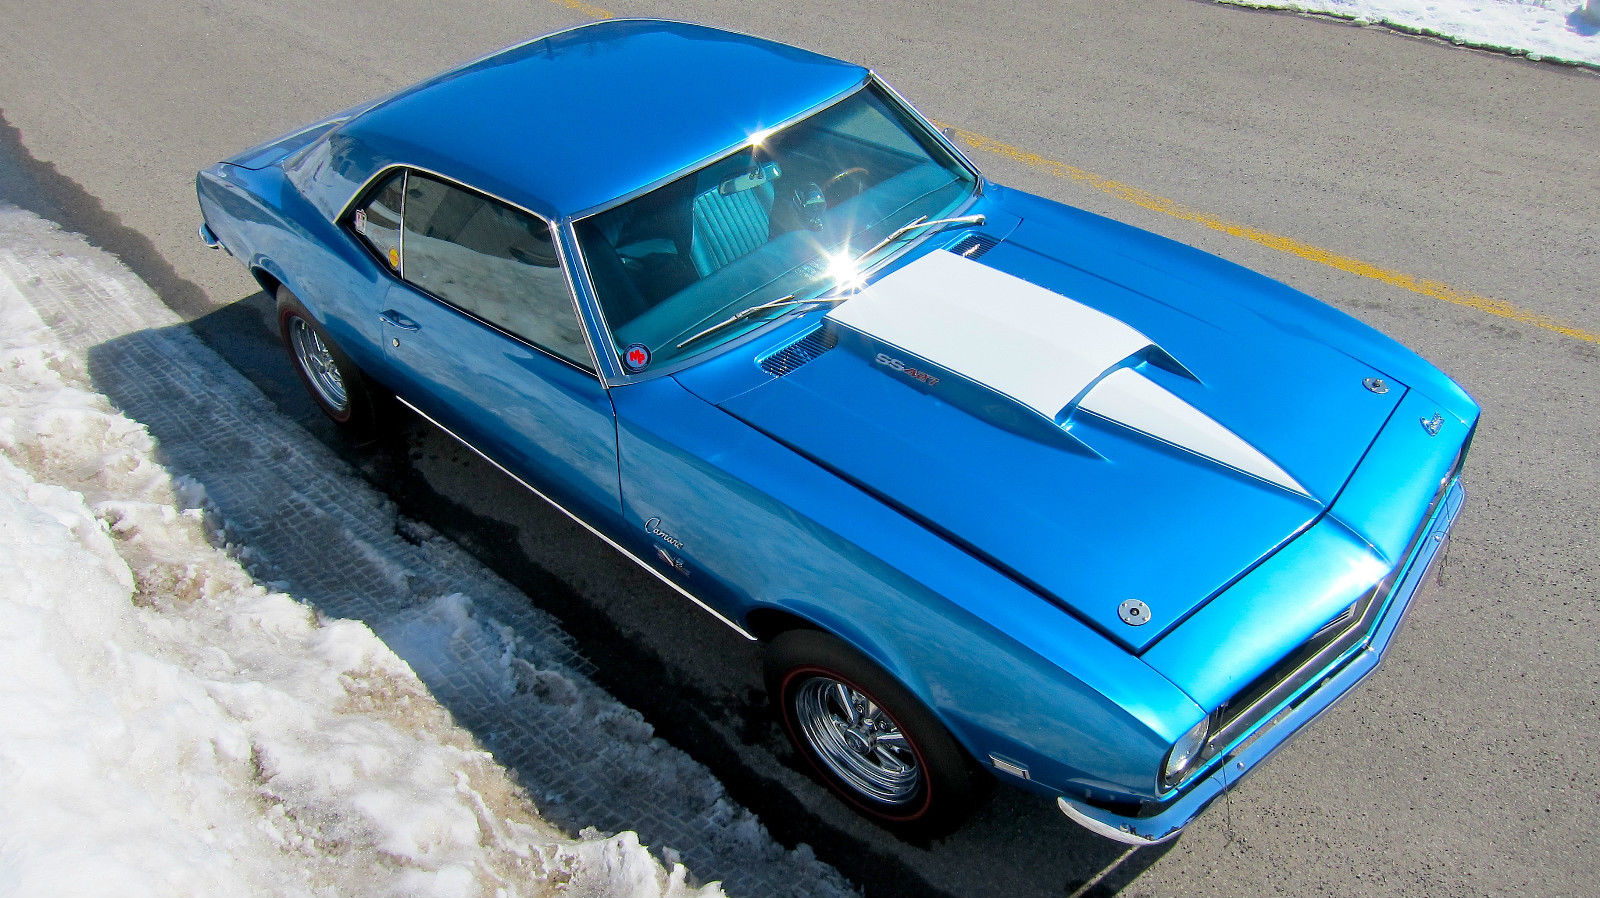 1968 Baldwin Motion Camaro Chevy Project Car Check Out The Photos And Then Hit Link At Bottom